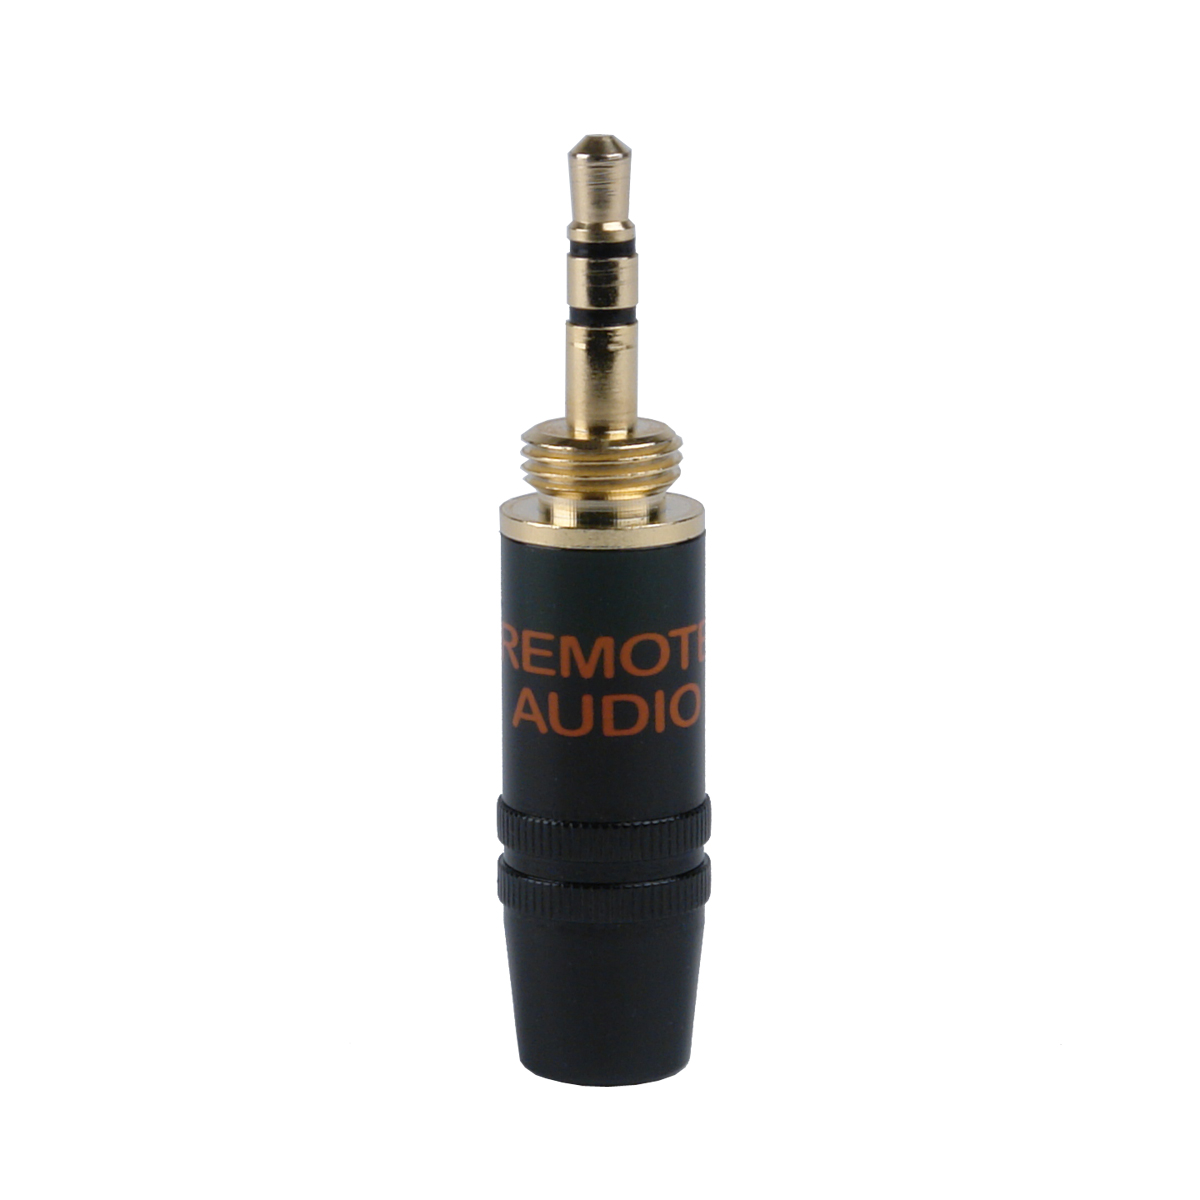 Remote Audio 3.5mm Unimatch Plug (SONY18TRSMV2)